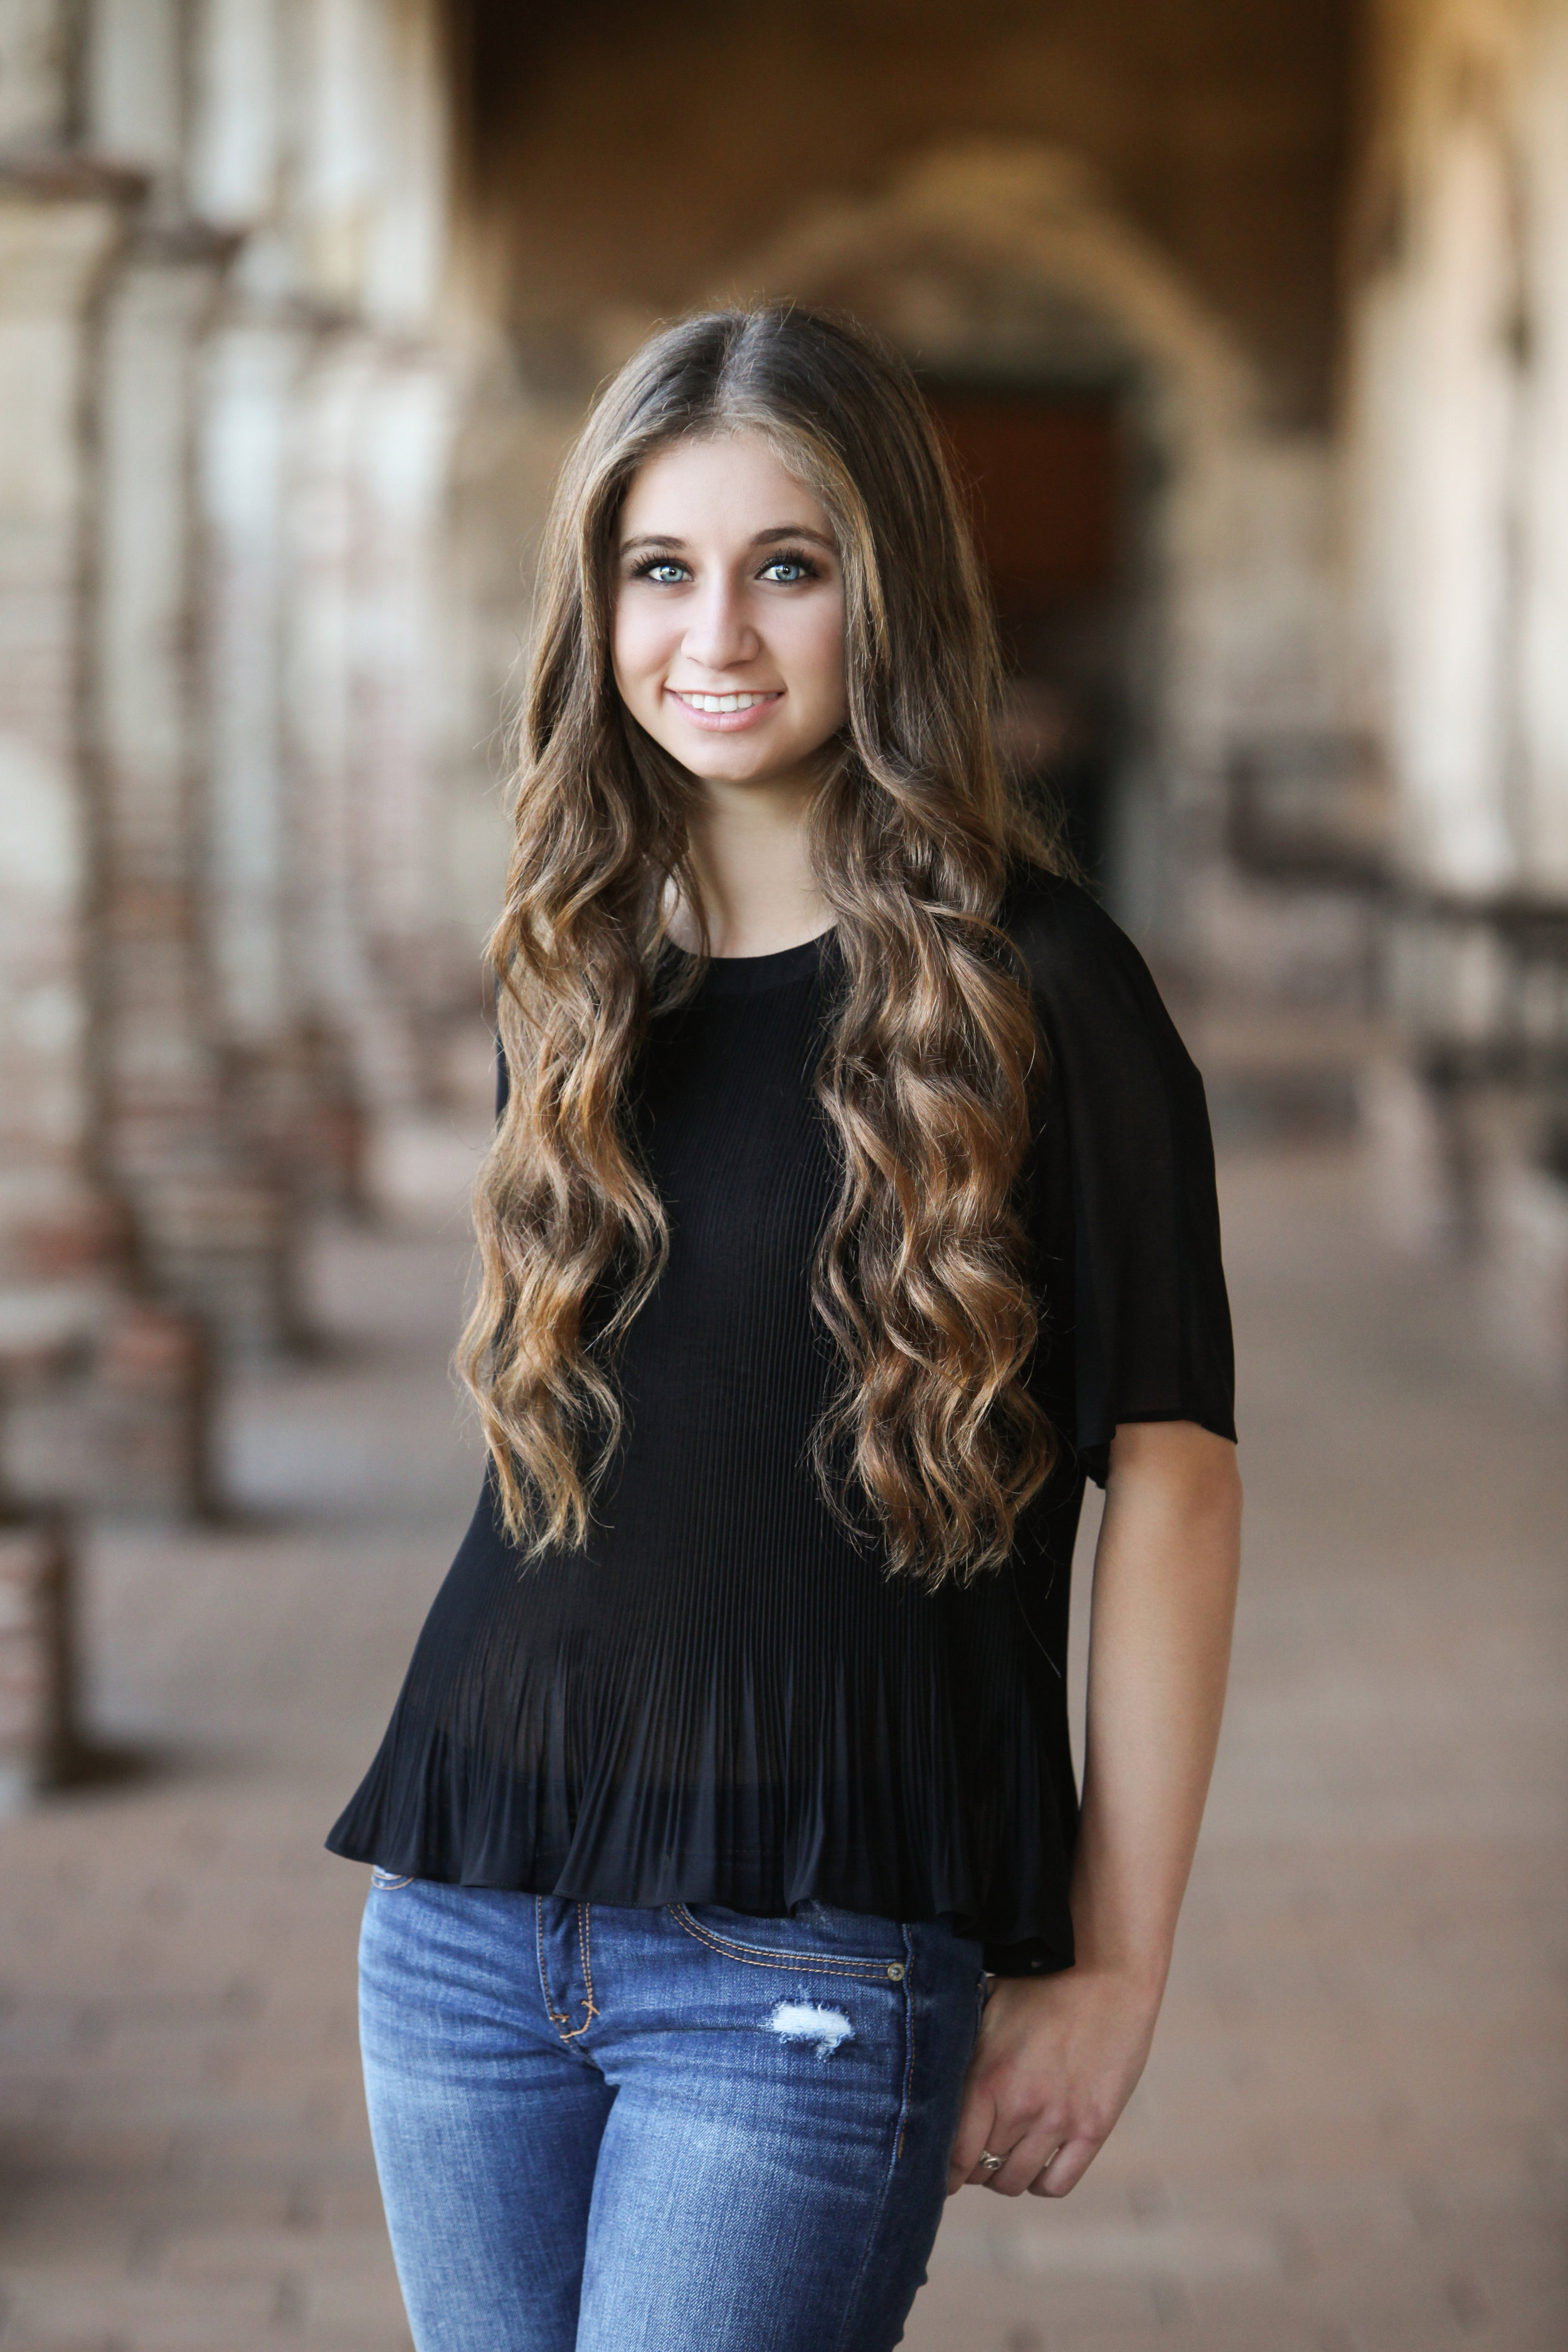 High school senior girl with long brown hair